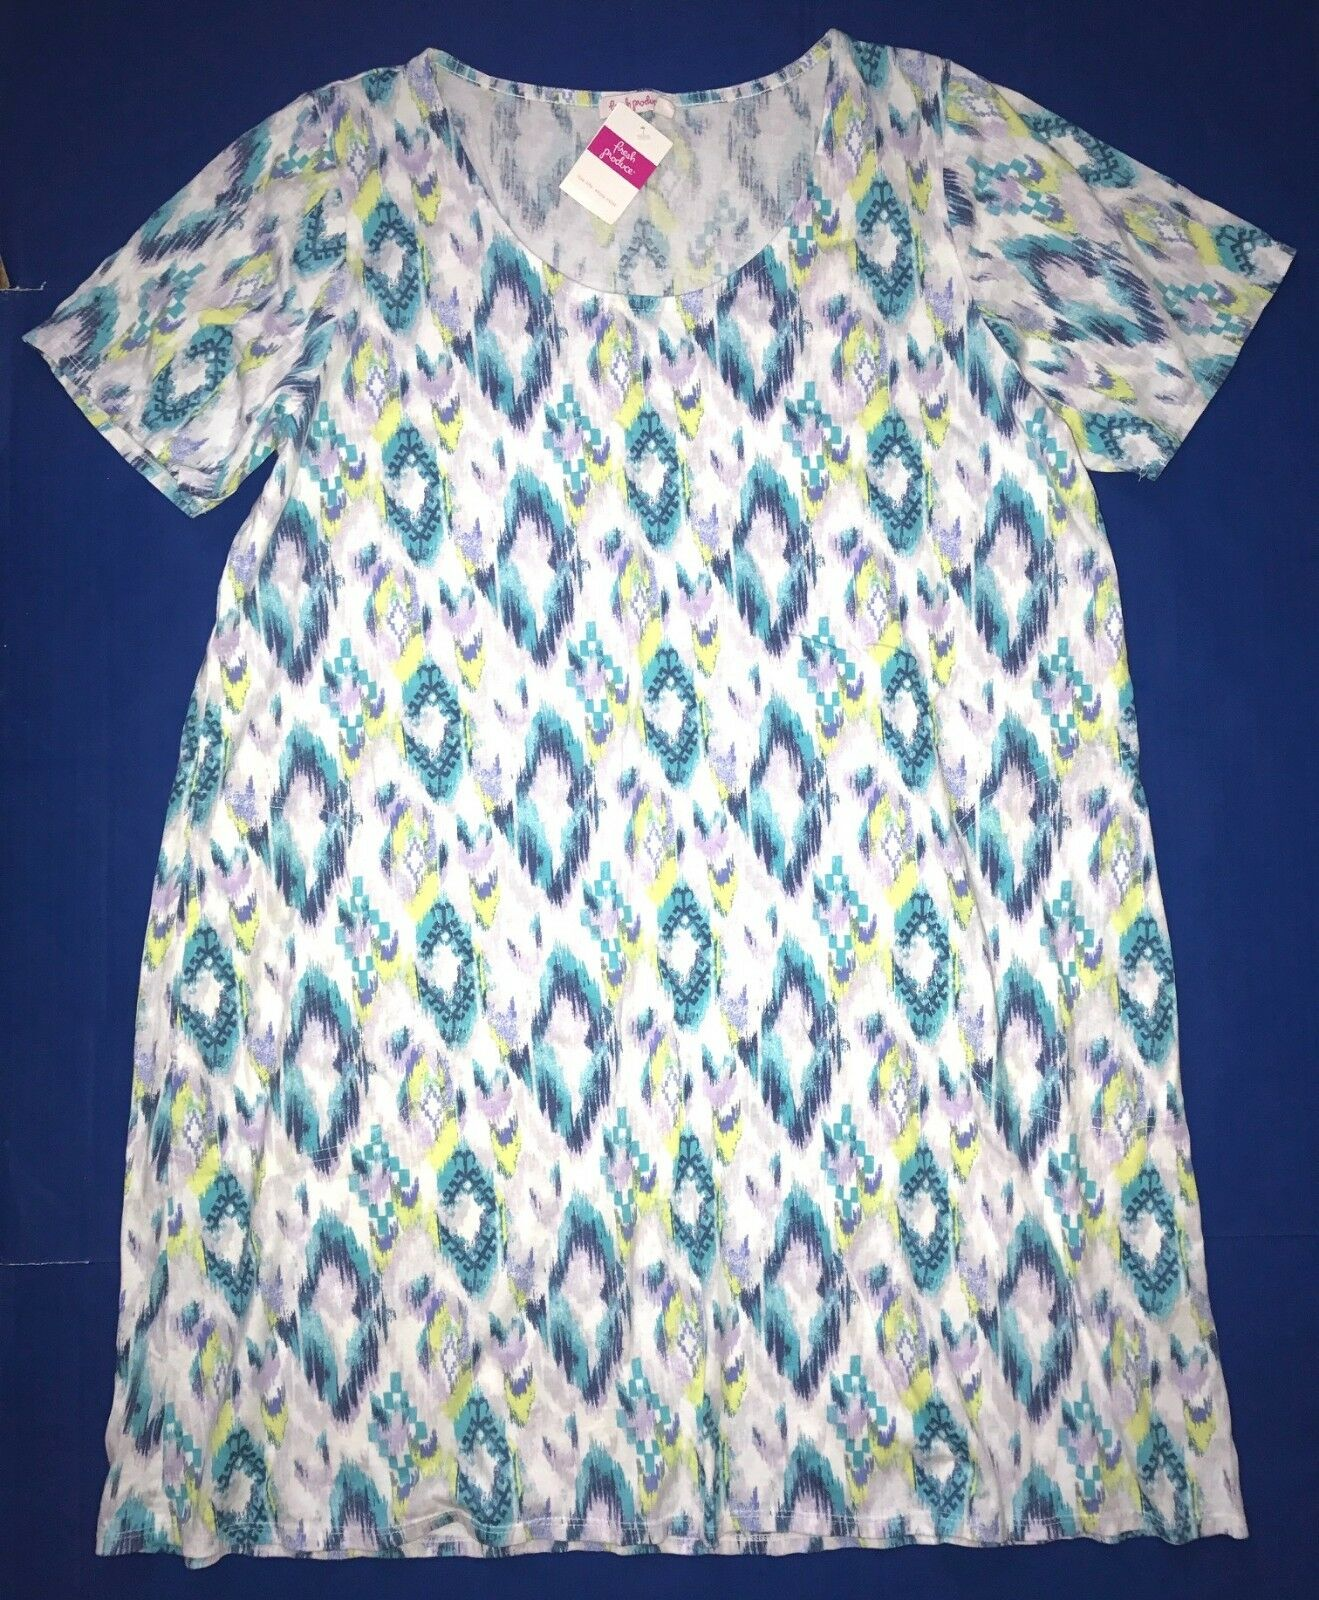 FRESH PRODUCE 1X White SUNSET SKY ALLURE Jersey Tee Shirt Dress NWT New 1X